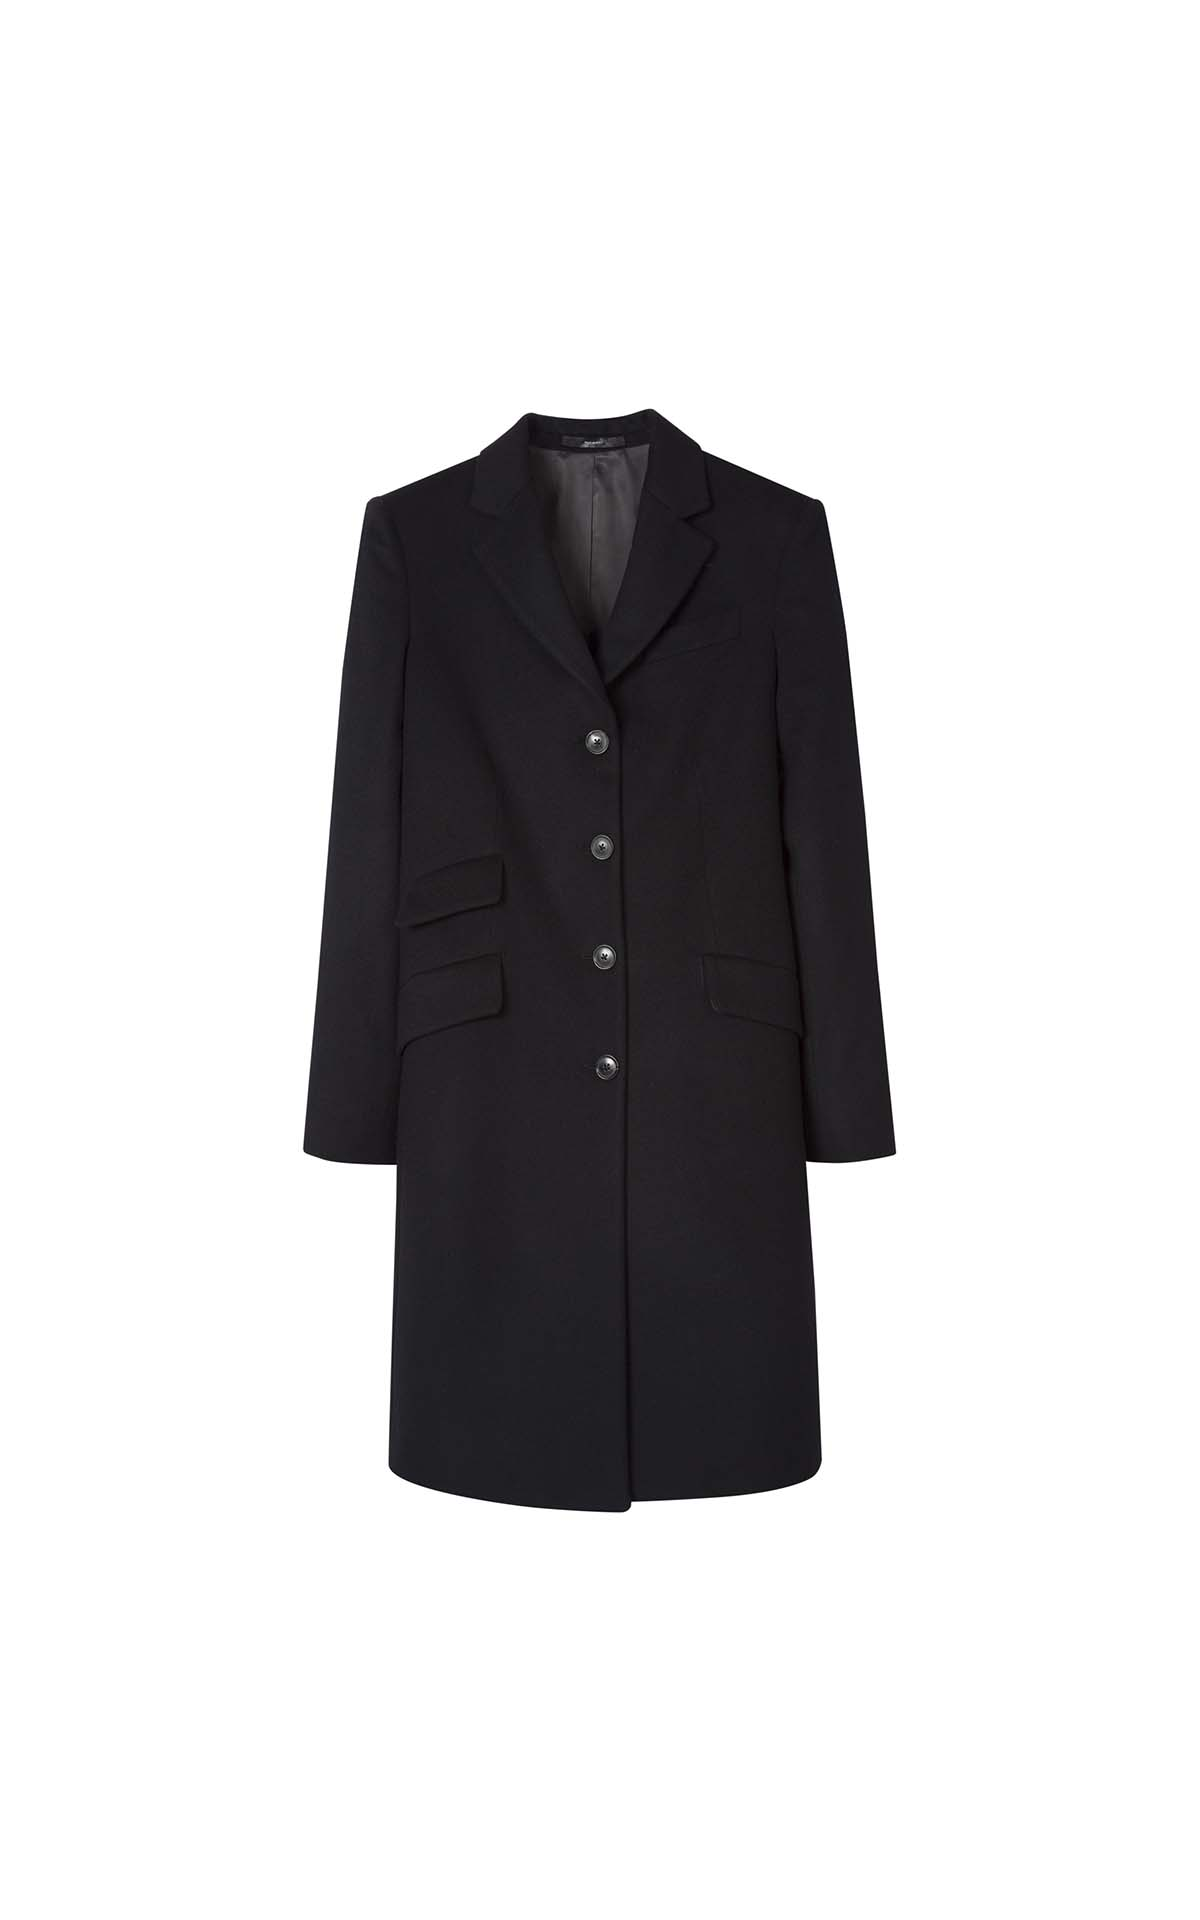 Paul Smith Women's coat at the Bicester Village Shopping Collection